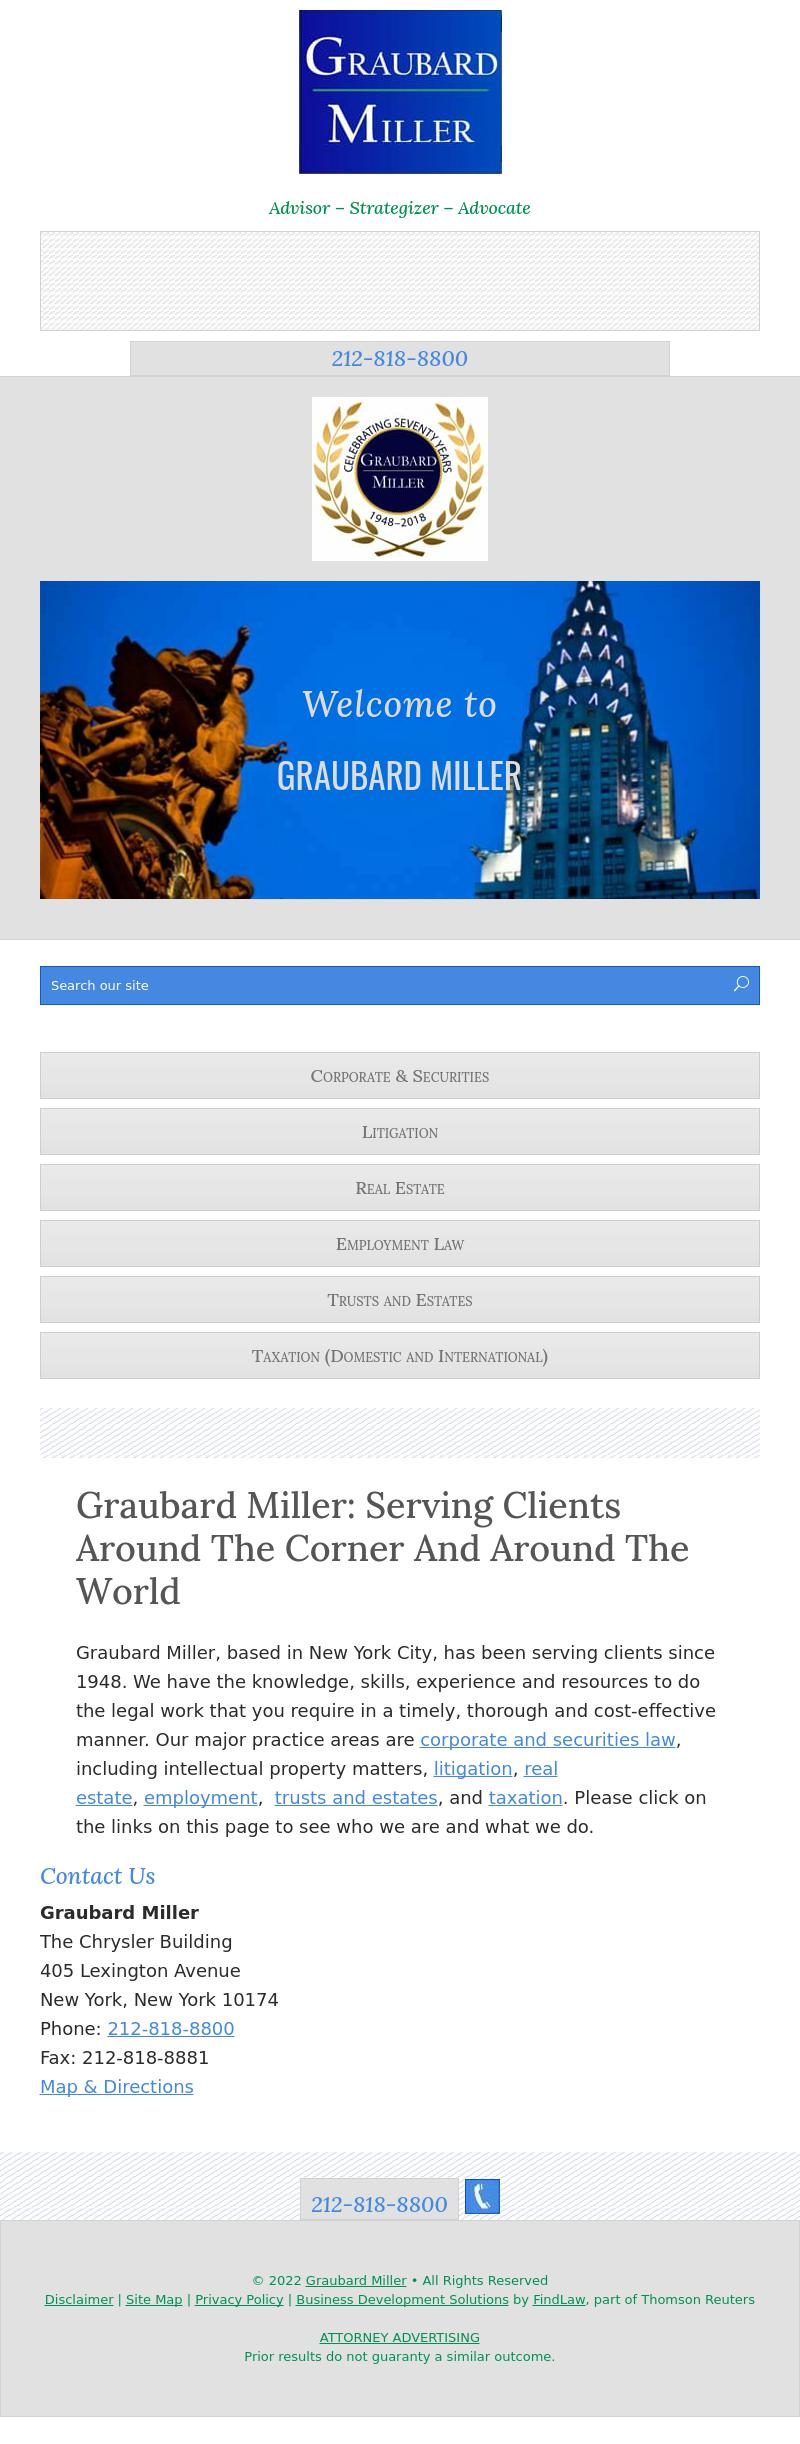 Graubard Miller - New York NY Lawyers